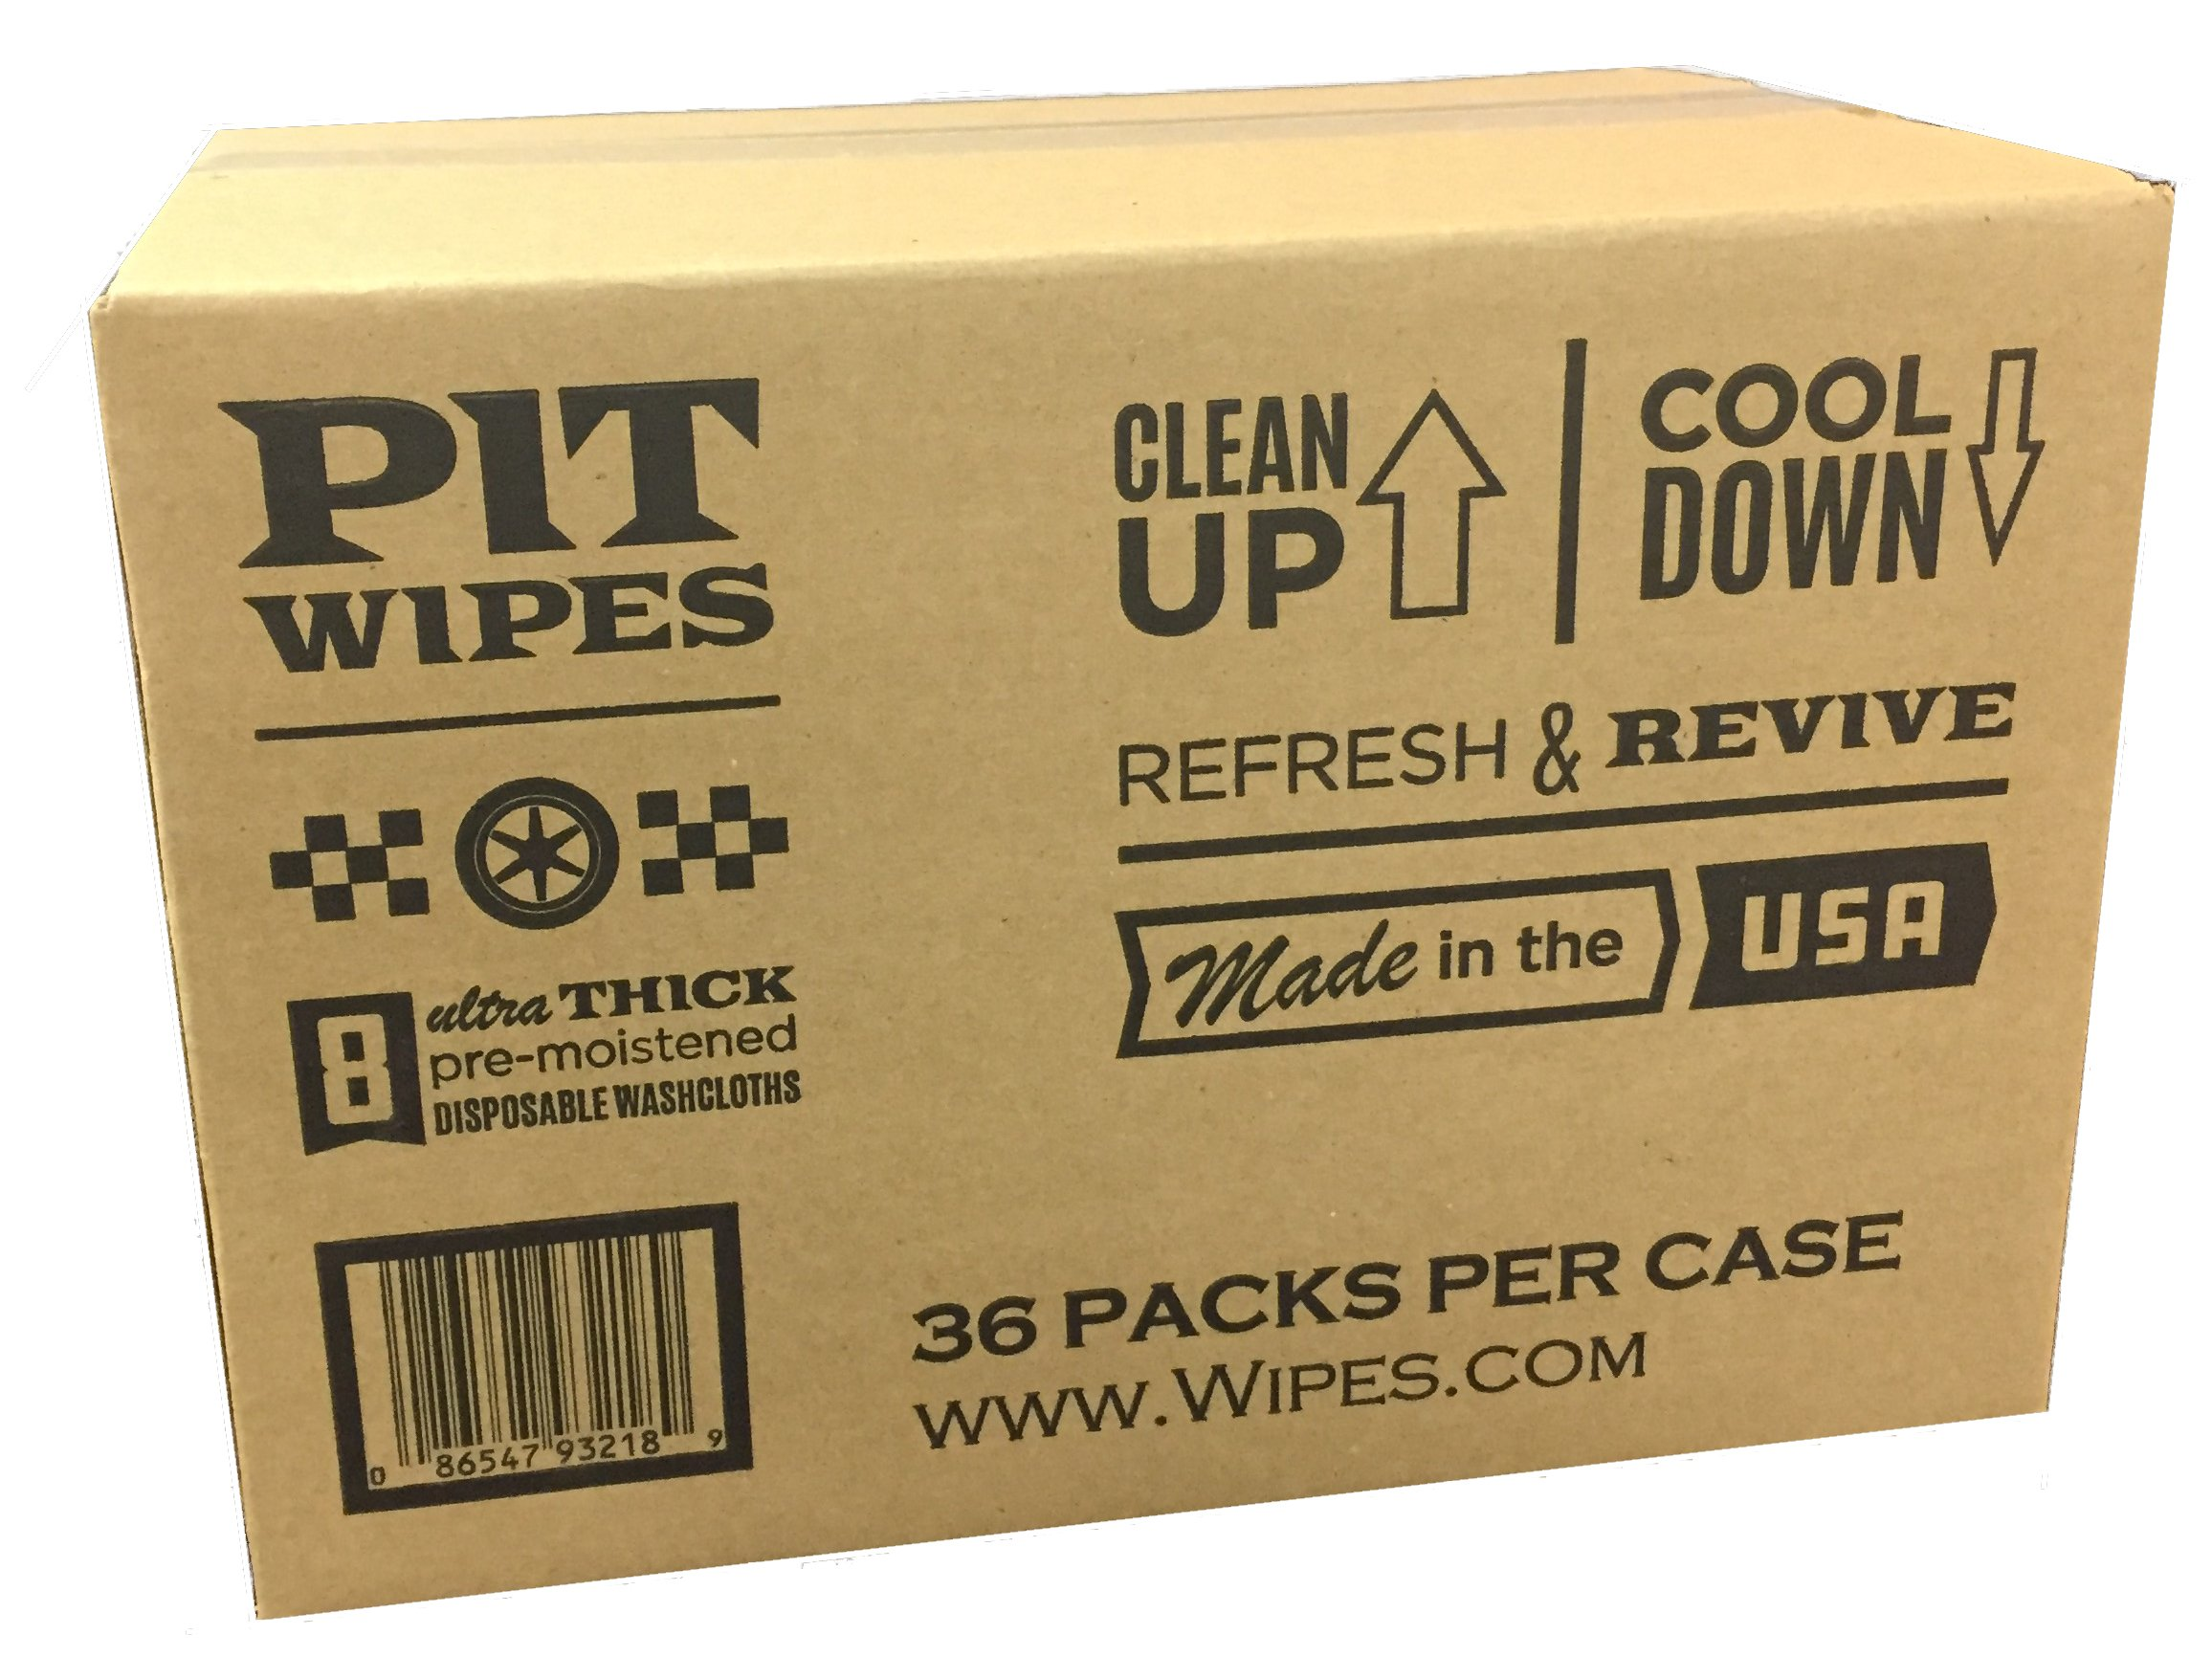 PIT WIPES Ultrathick Pre-Moistened Body Wipes, Resealable, Case of 36 Packs, 288 Total Wipes by PIT WIPES